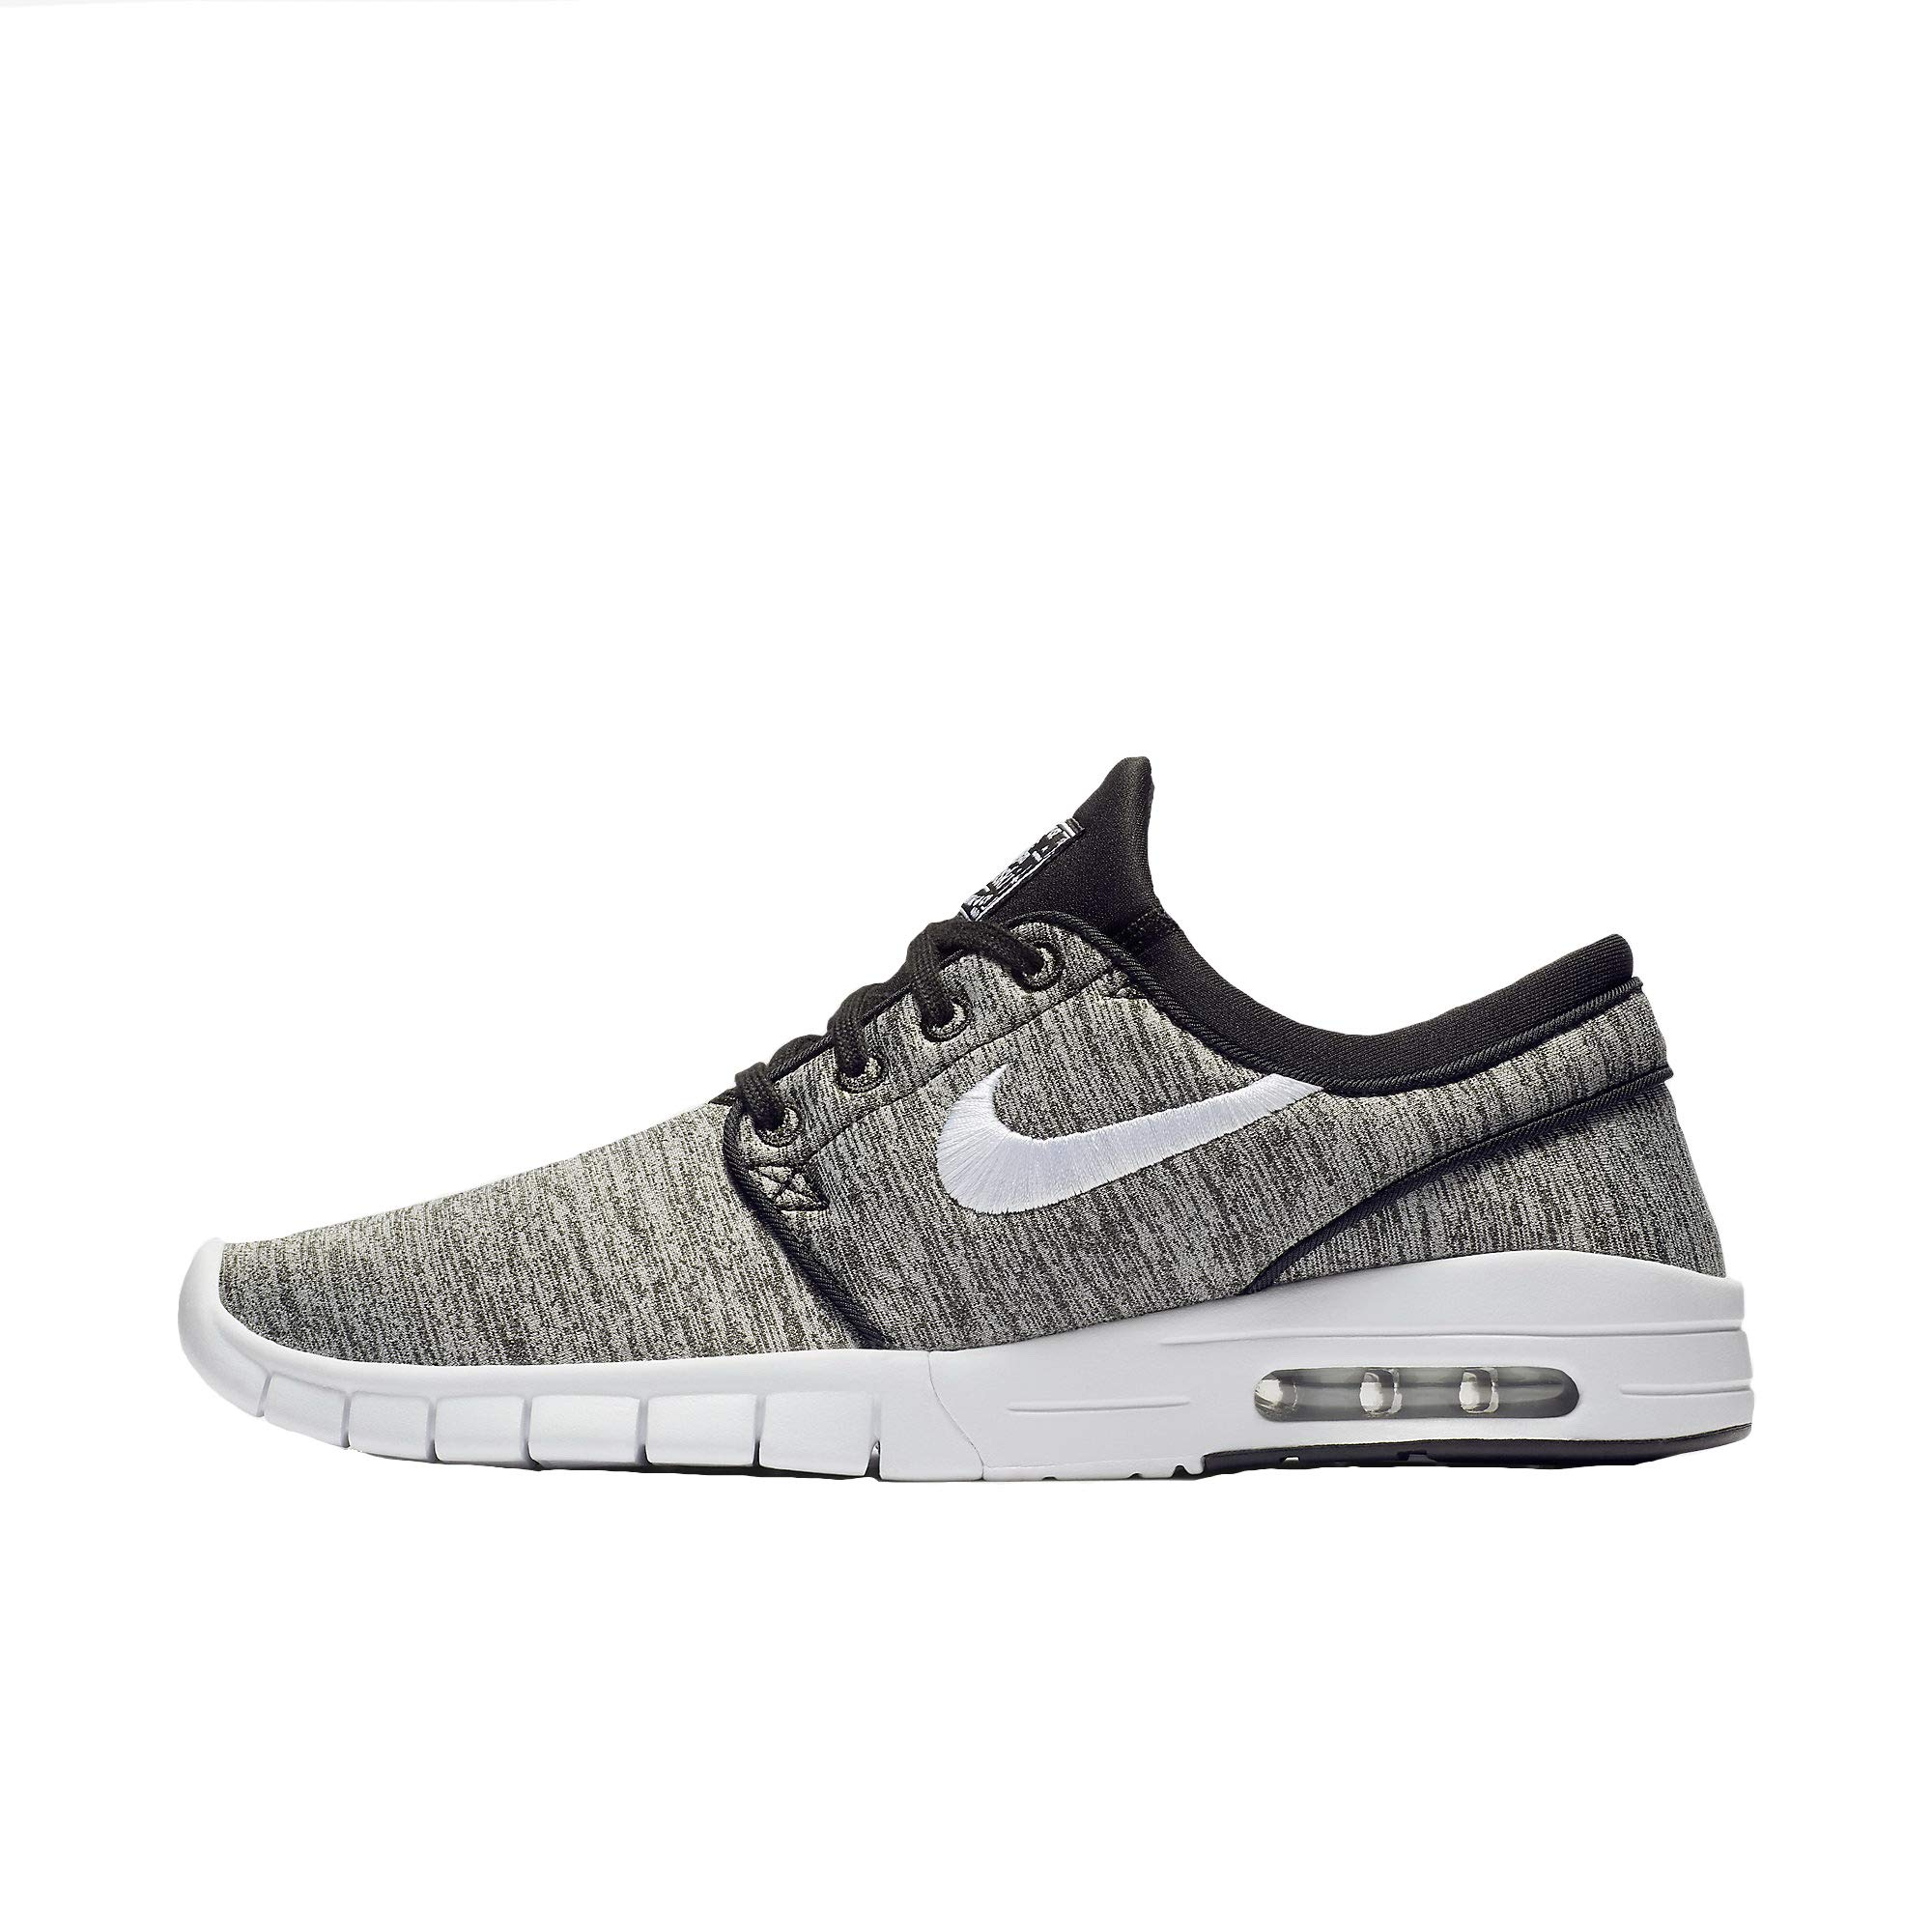 cheap for discount 694a4 18075 Galleon - NIKE Men s Stefan Janoski Max Skate Shoe (11 D(M) US, Black White)